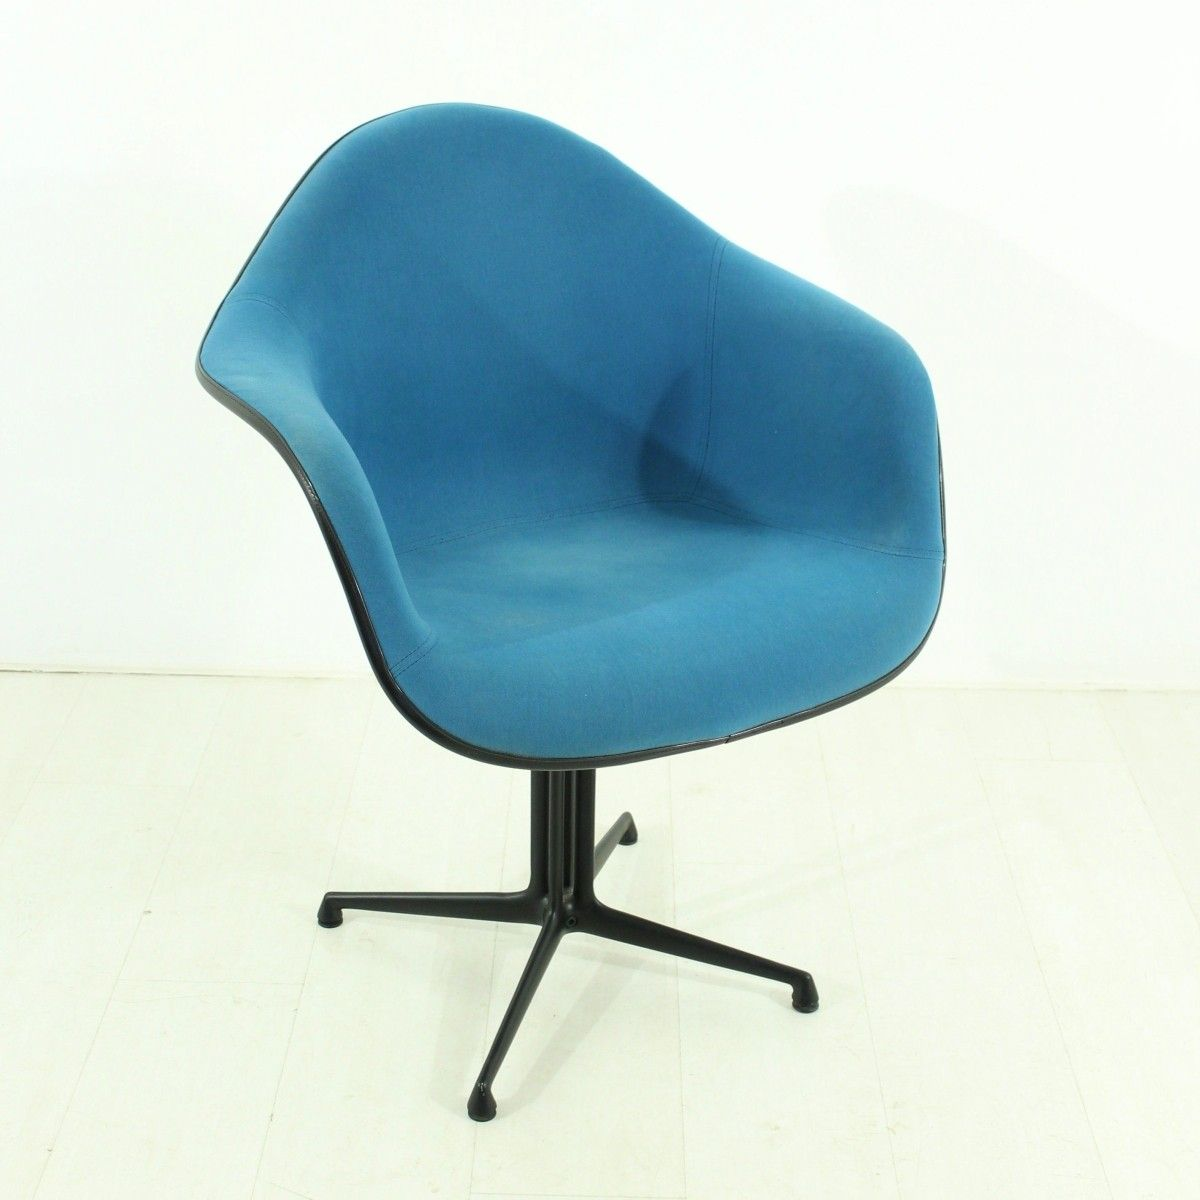 Vintage blue la fonda chair by charles ray eames for for Eames chair deutschland